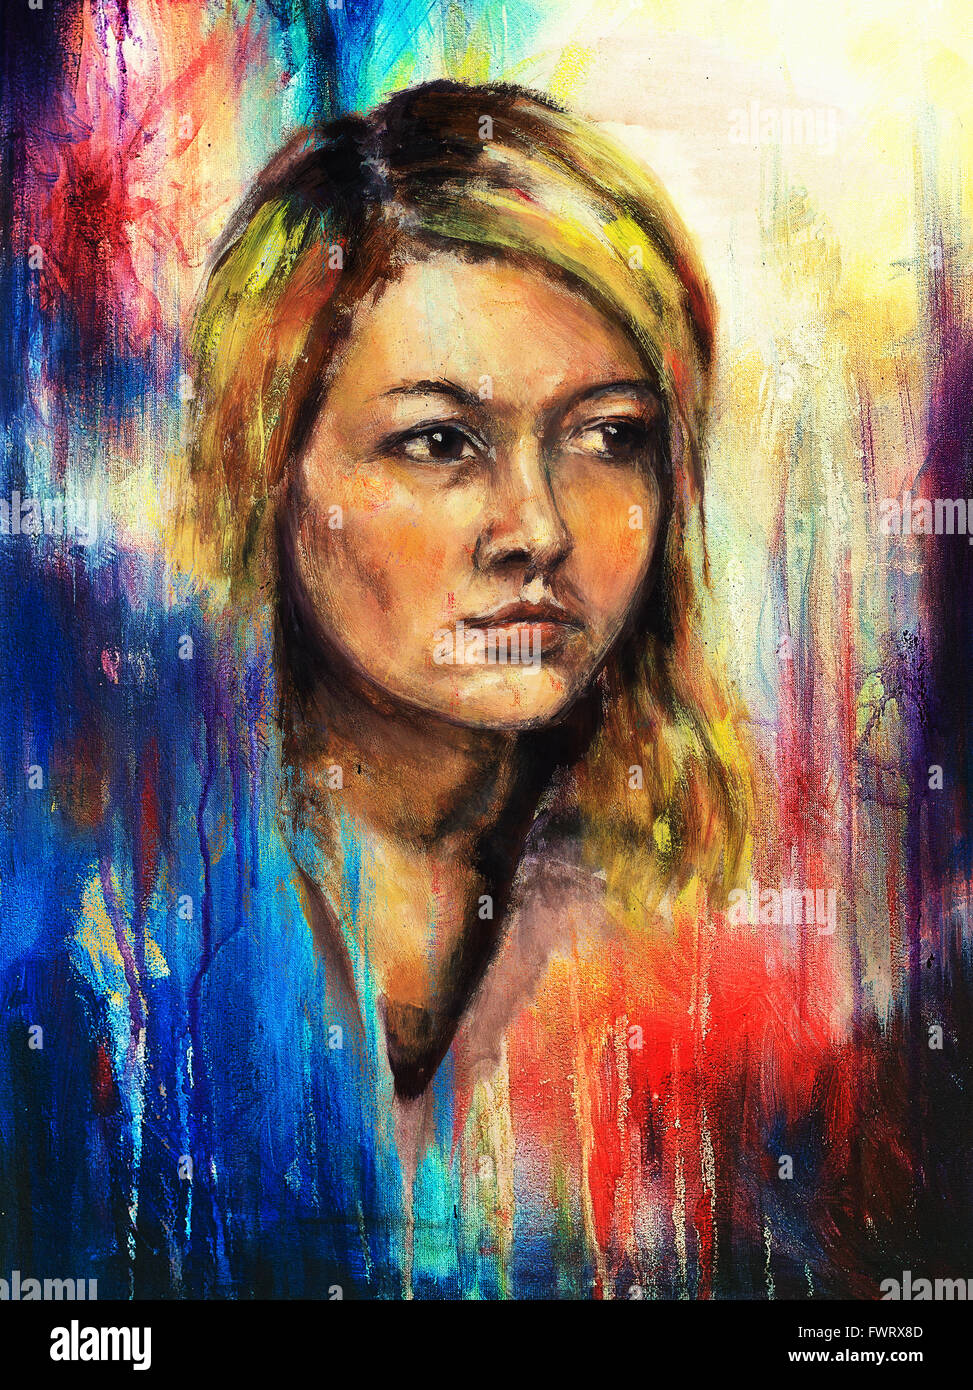 Art Colorful Painting Beautiful Girl Face And Abstract Color Stock Photo Royalty Free Image